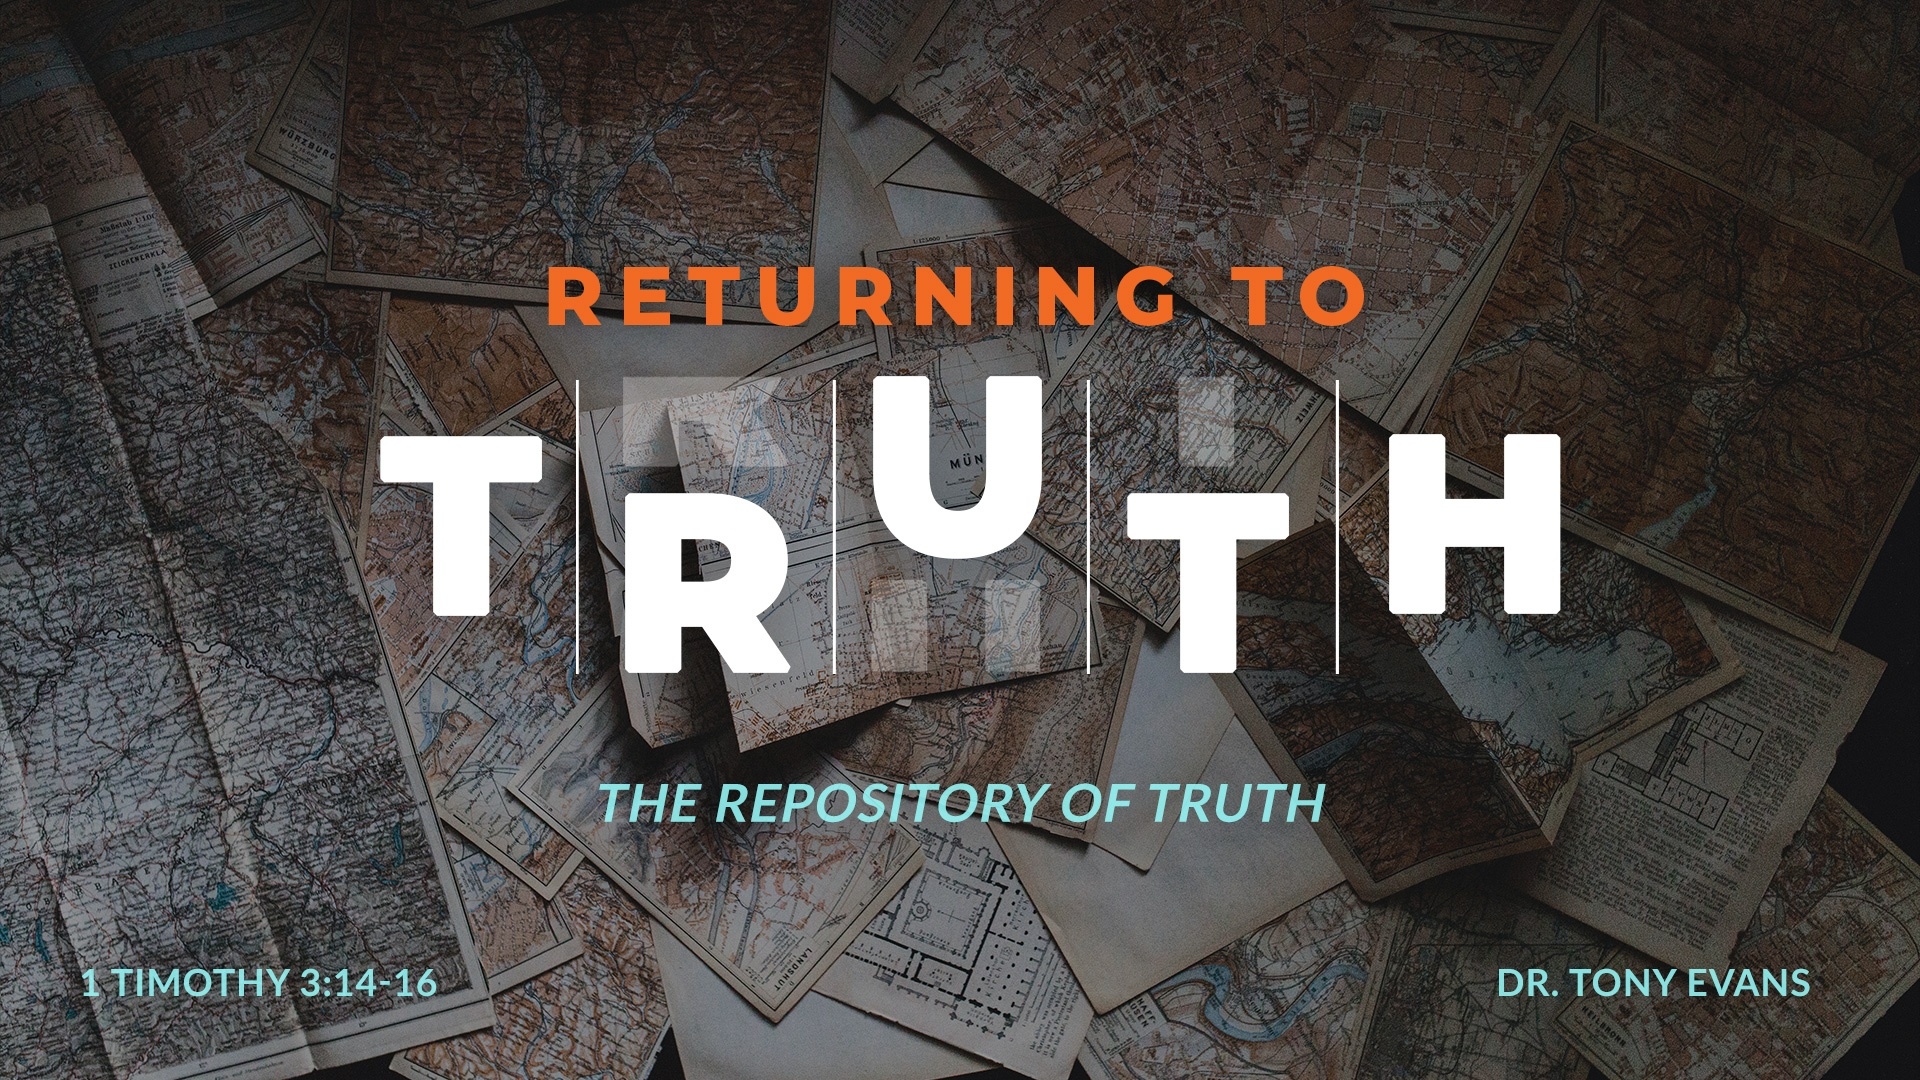 Returning to Truth: The Repository of Truth by Dr. Tony Evans